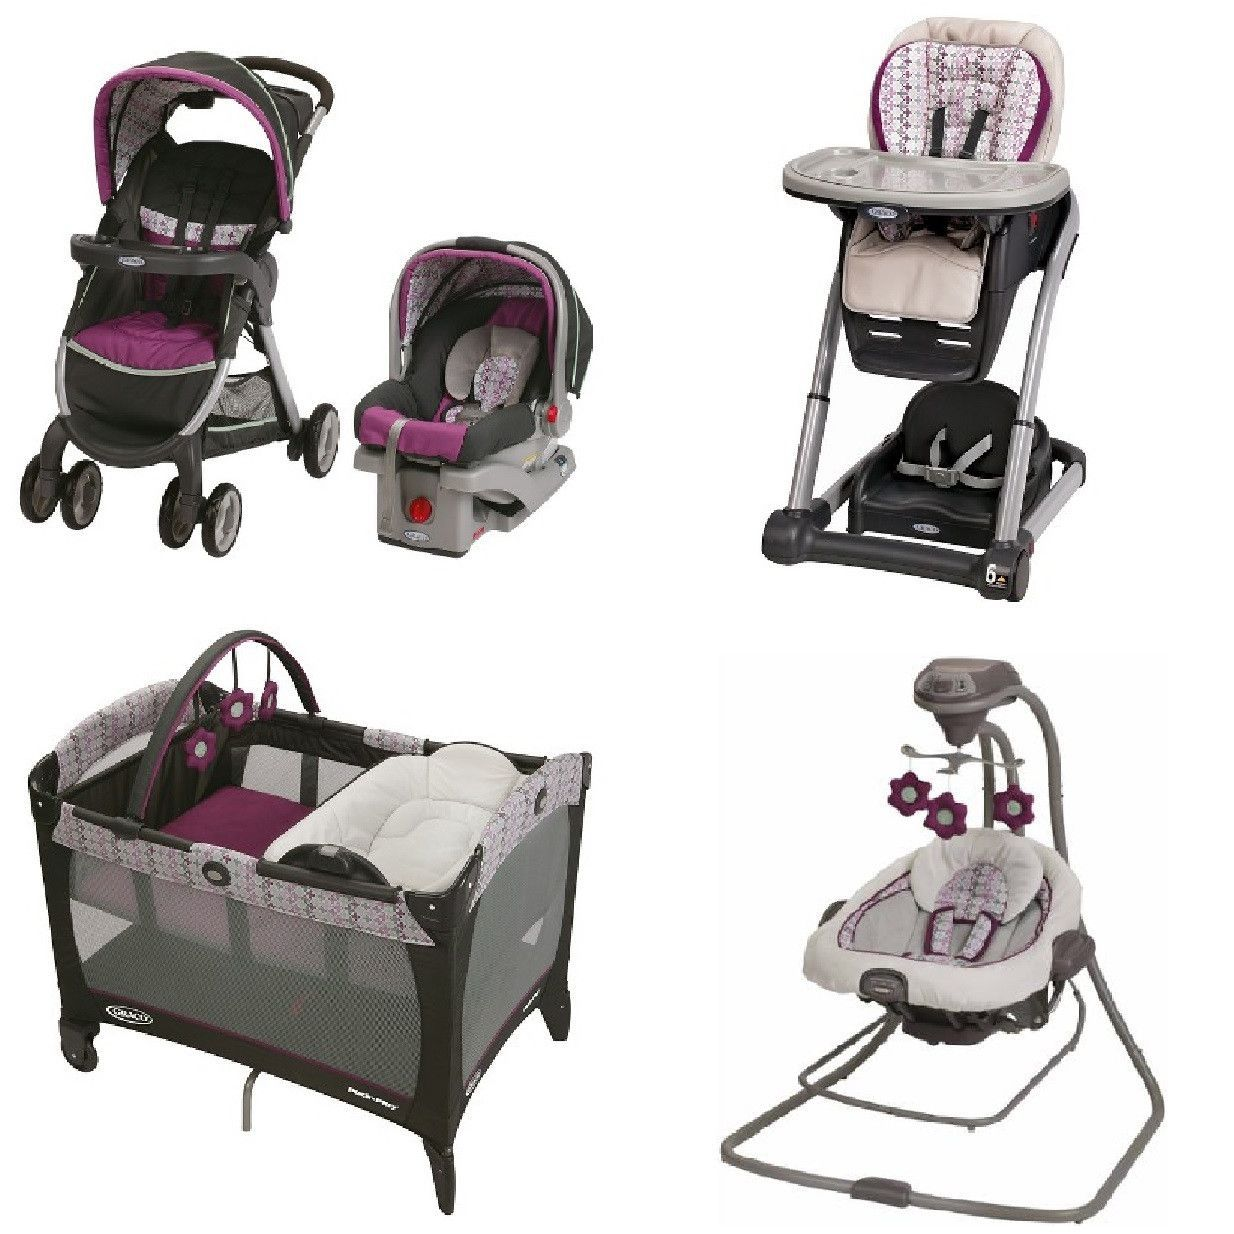 Baby Gear Bundle, Travel System, Play Yard, Swing, and